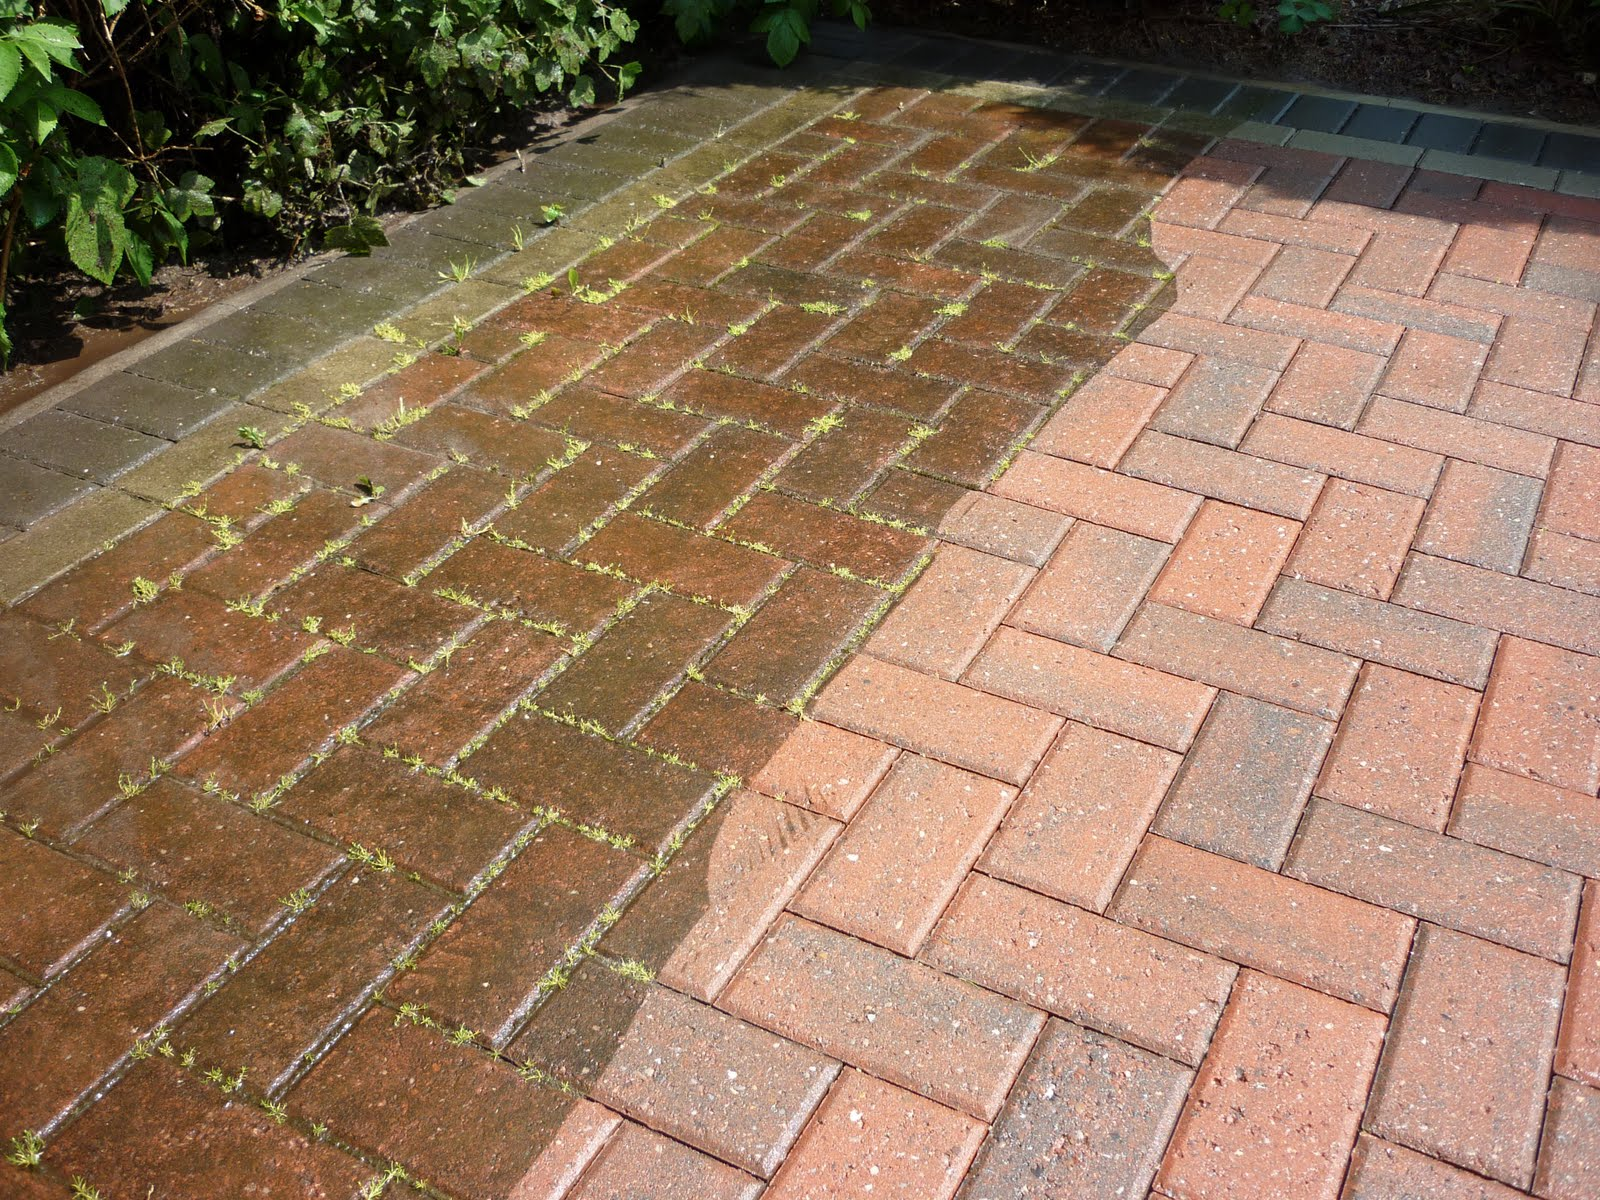 power washing image 1 (1)